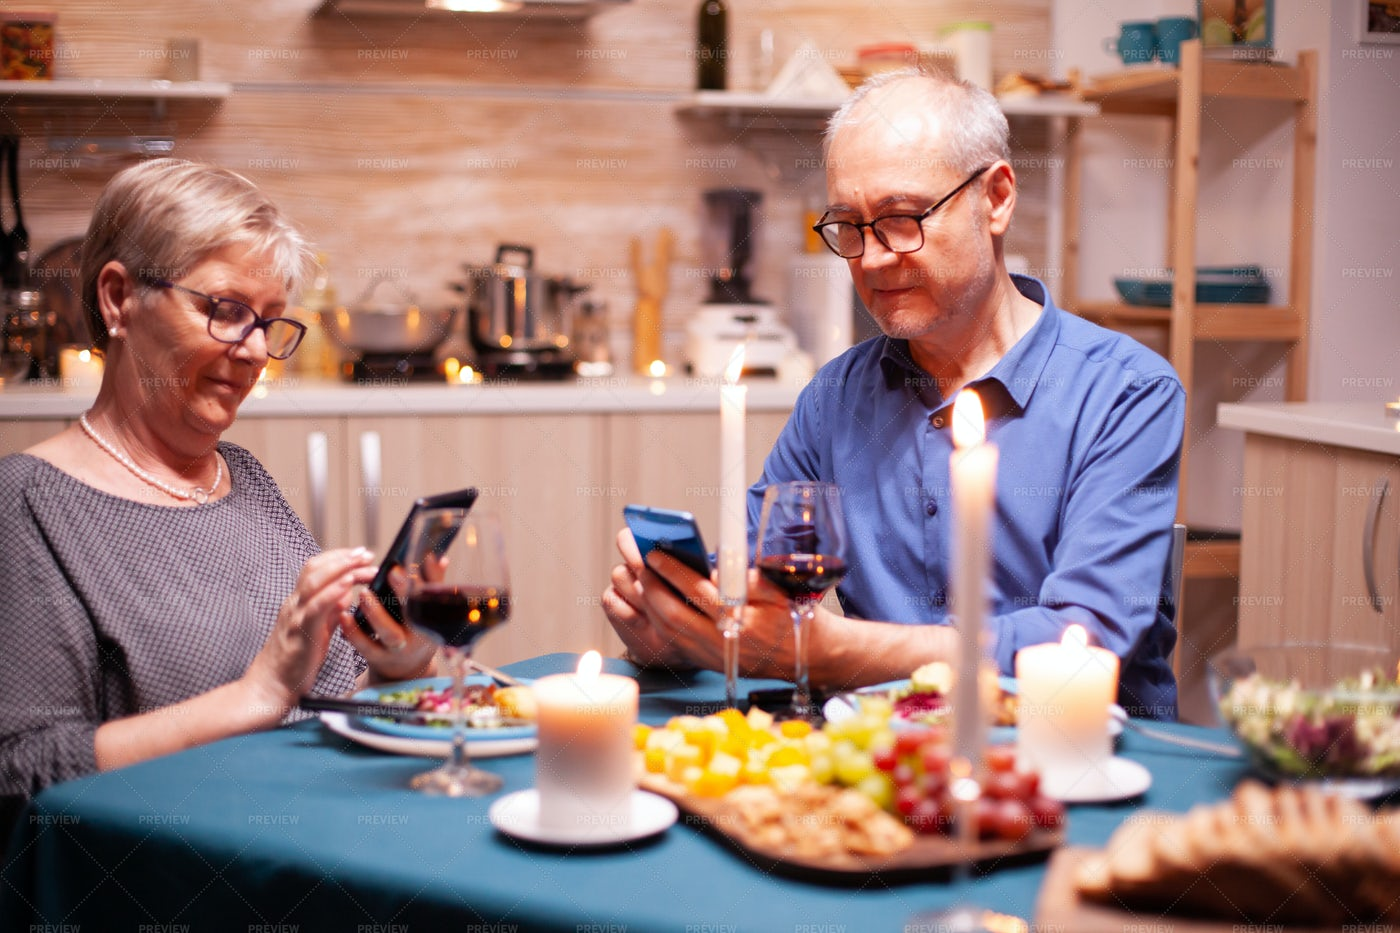 Browsing On Their Smartphone: Stock Photos